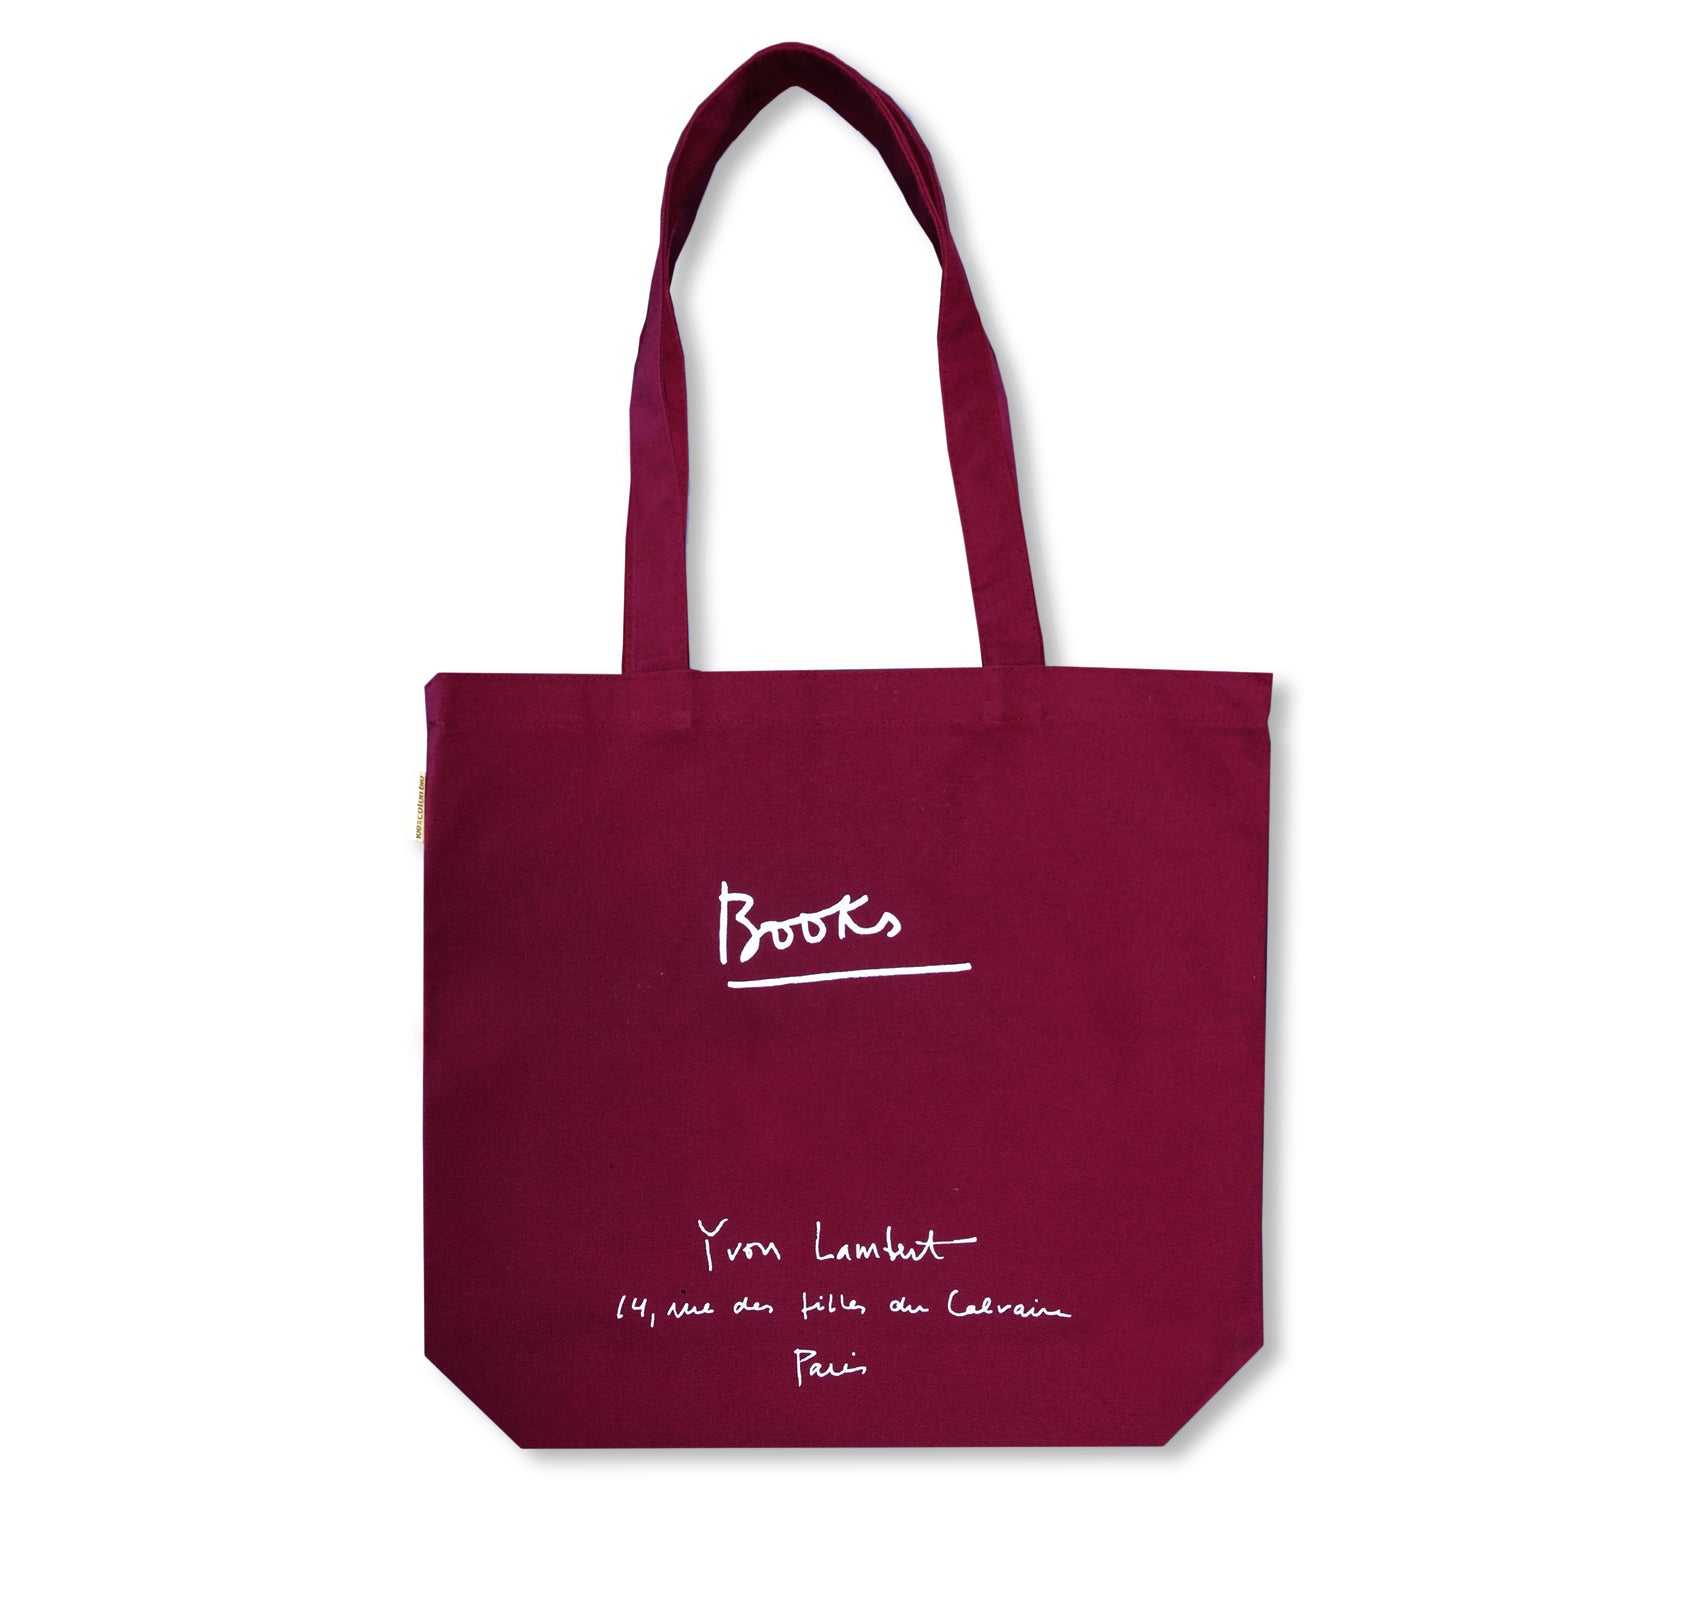 YVON LAMBERT TOTE BAG (REGULAR / BURGUNDY)